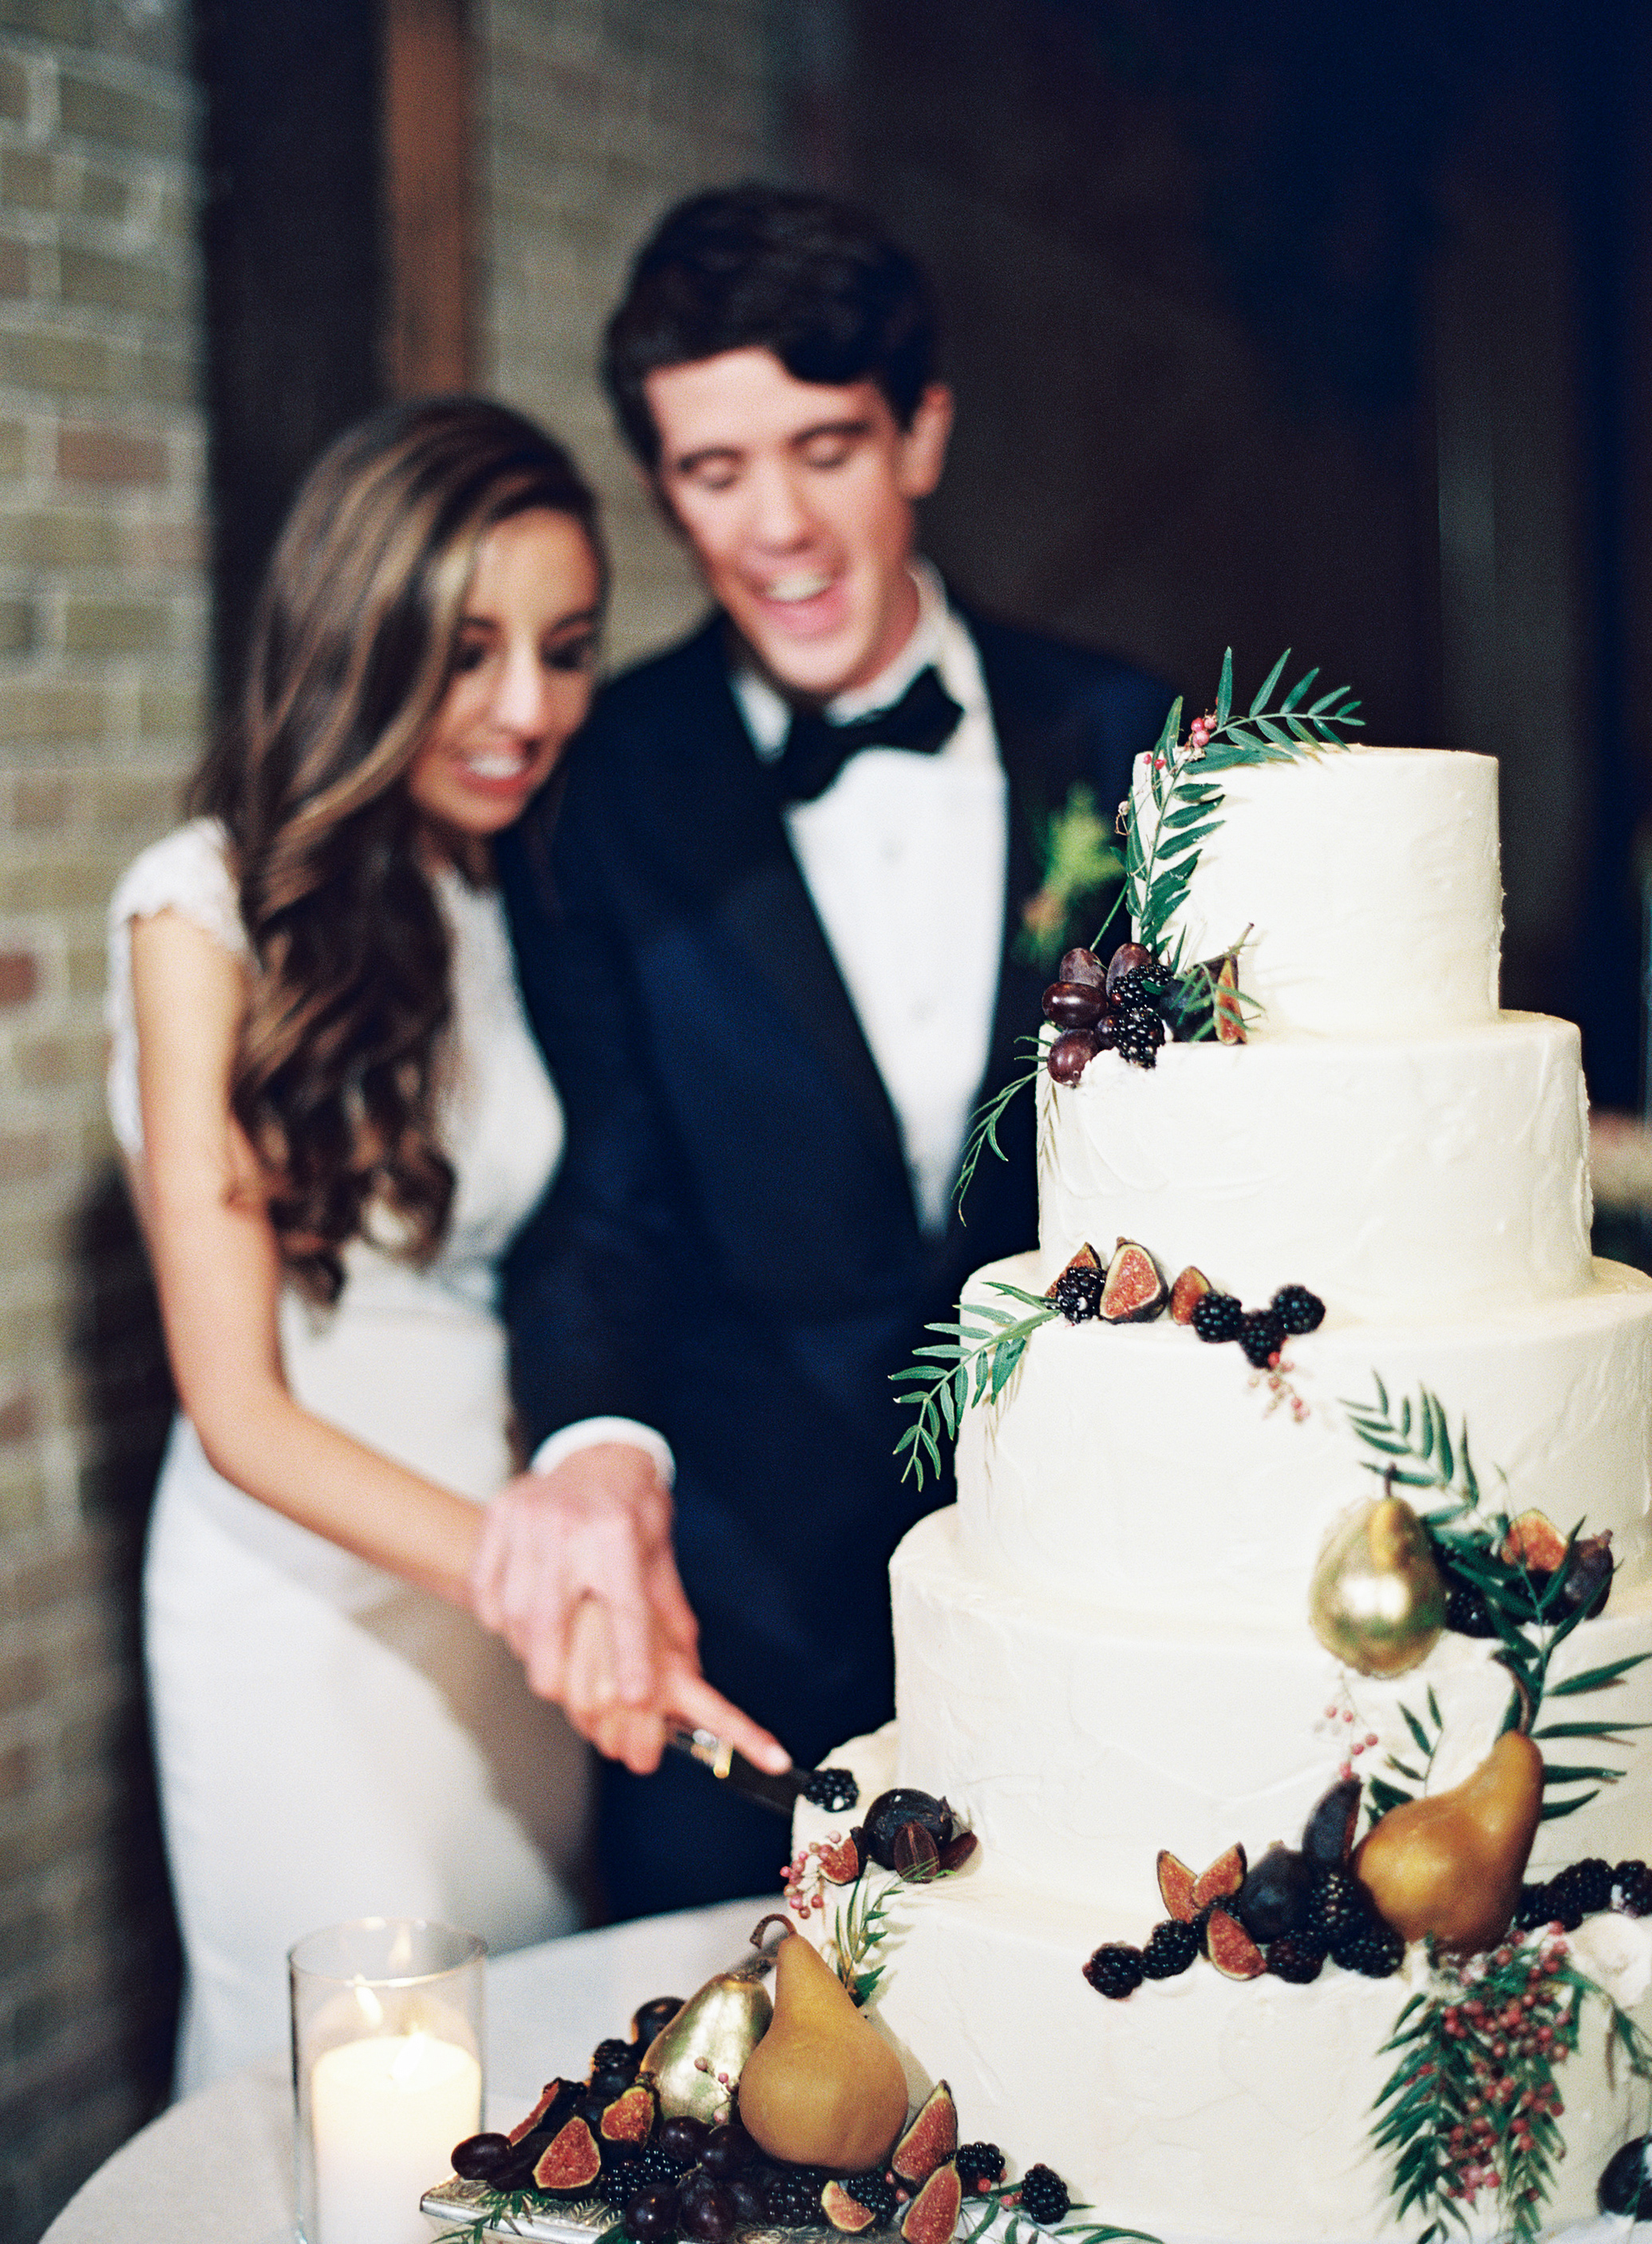 When Should You Cut Your Wedding Cake?